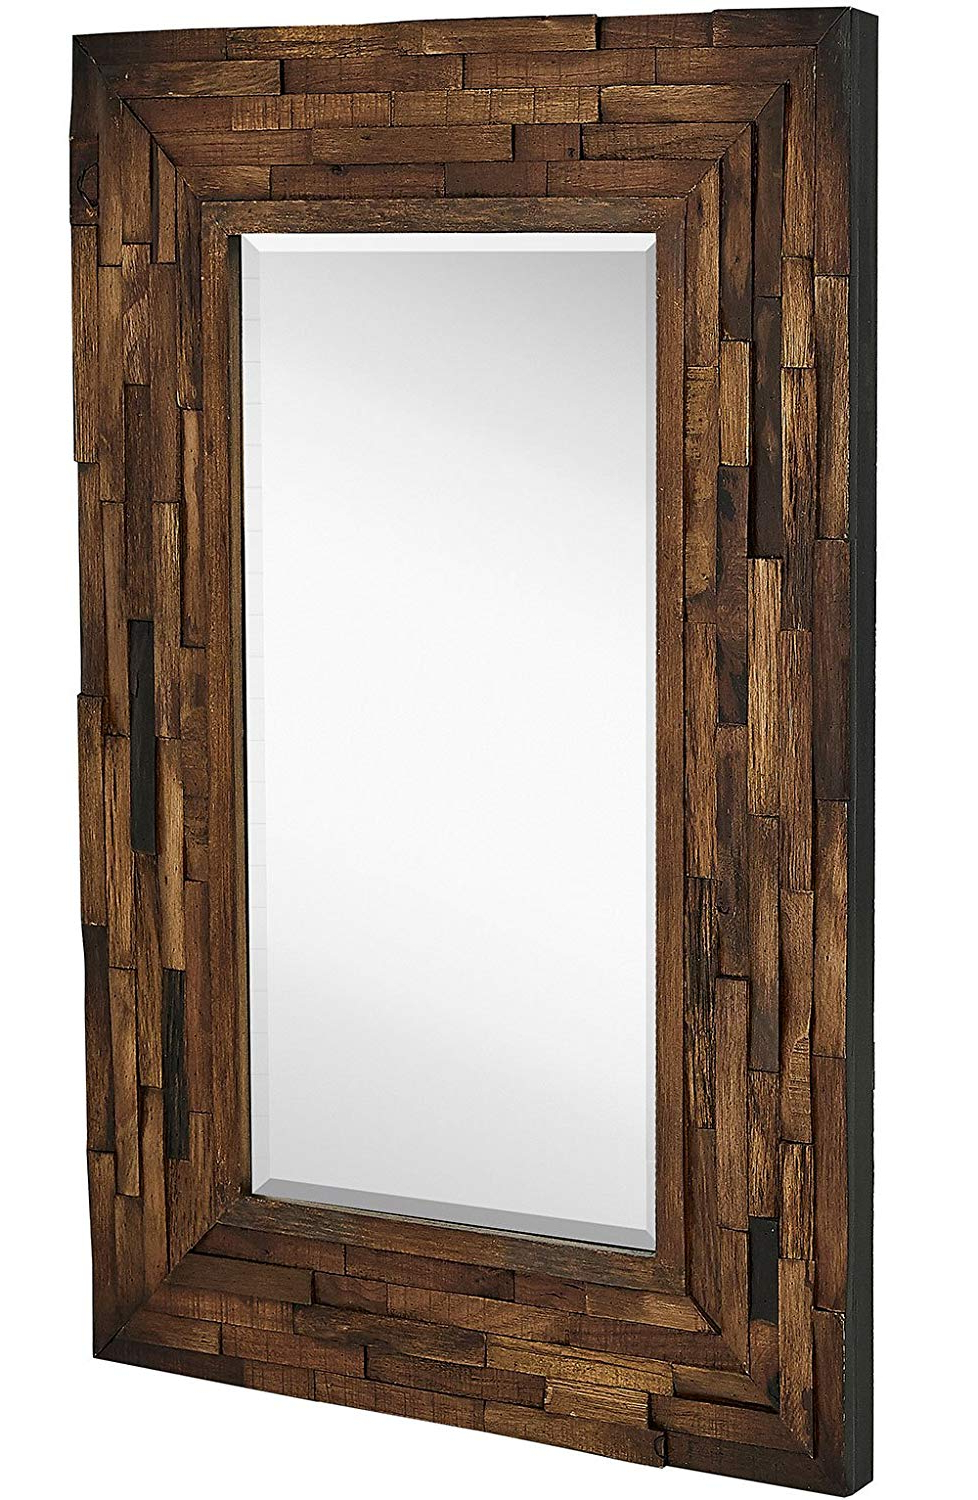 Hamilton Hills Rustic Natural Wood Framed Wall Mirror (View 2 of 20)